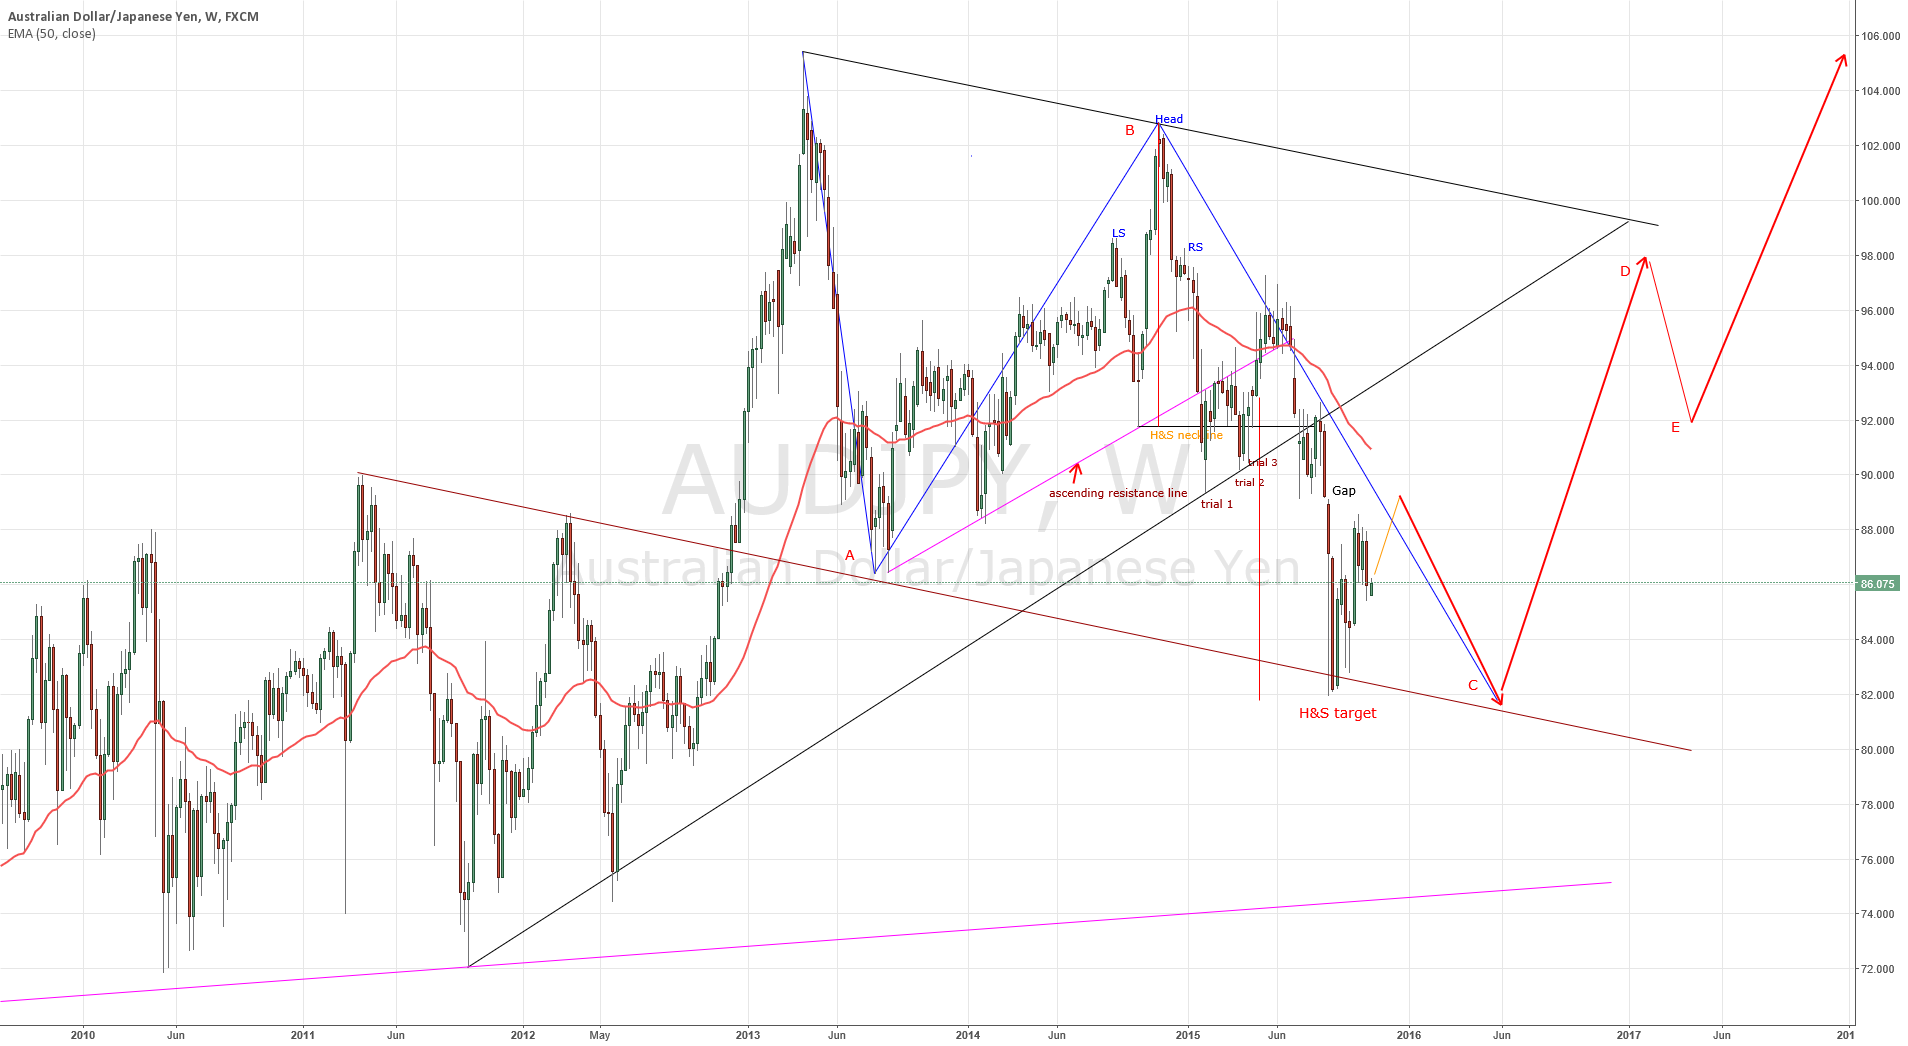 AUD/JPY Larger Major-2-ABCDE waves going on (Nikita FX )